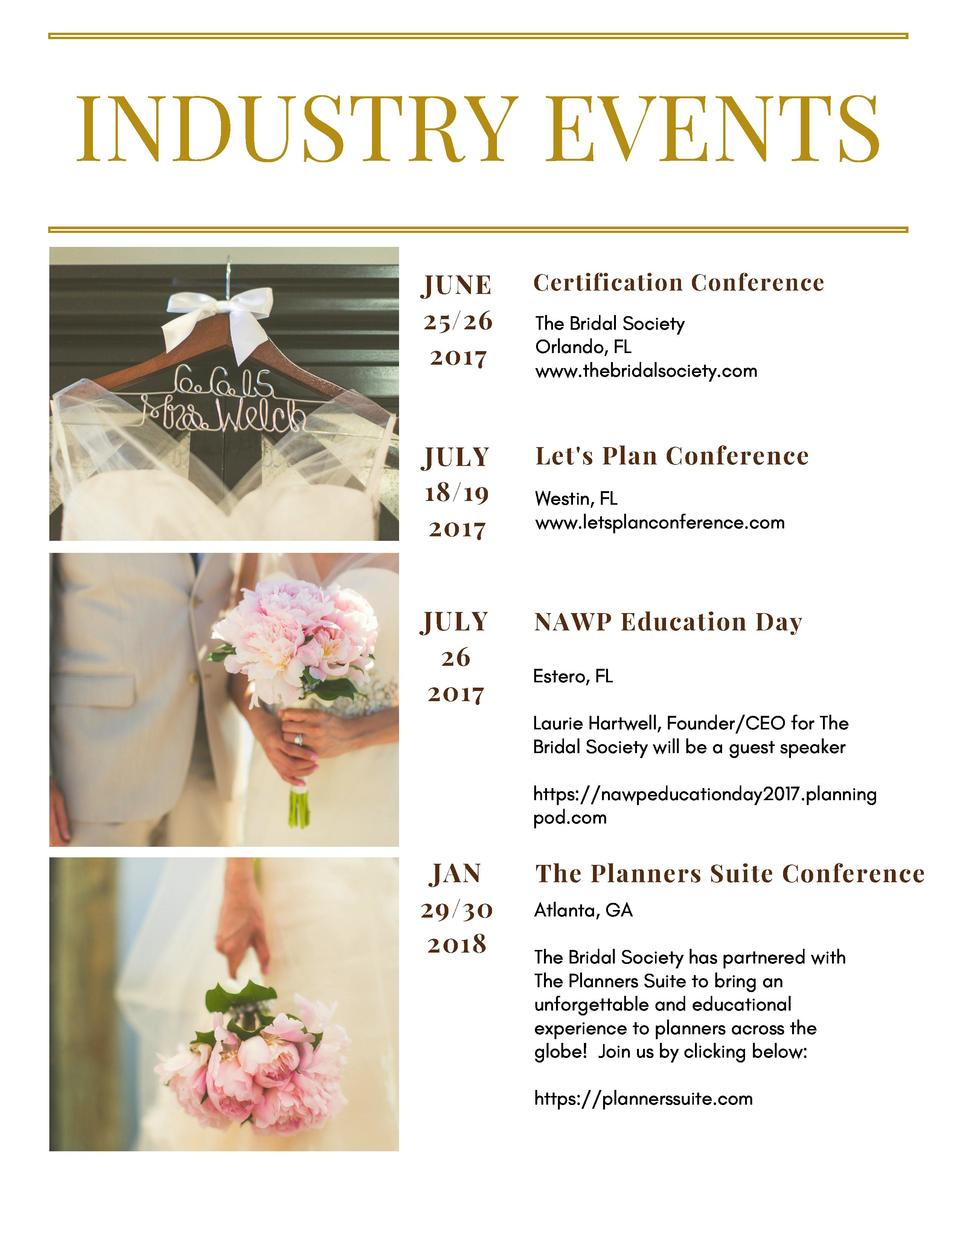 INDUSTRY EVENTS JUNE 25 26 2017  Certification Conference  JULY 18 19 2017  Let s Plan Conference  JULY 26 2017  NAWP Educ...